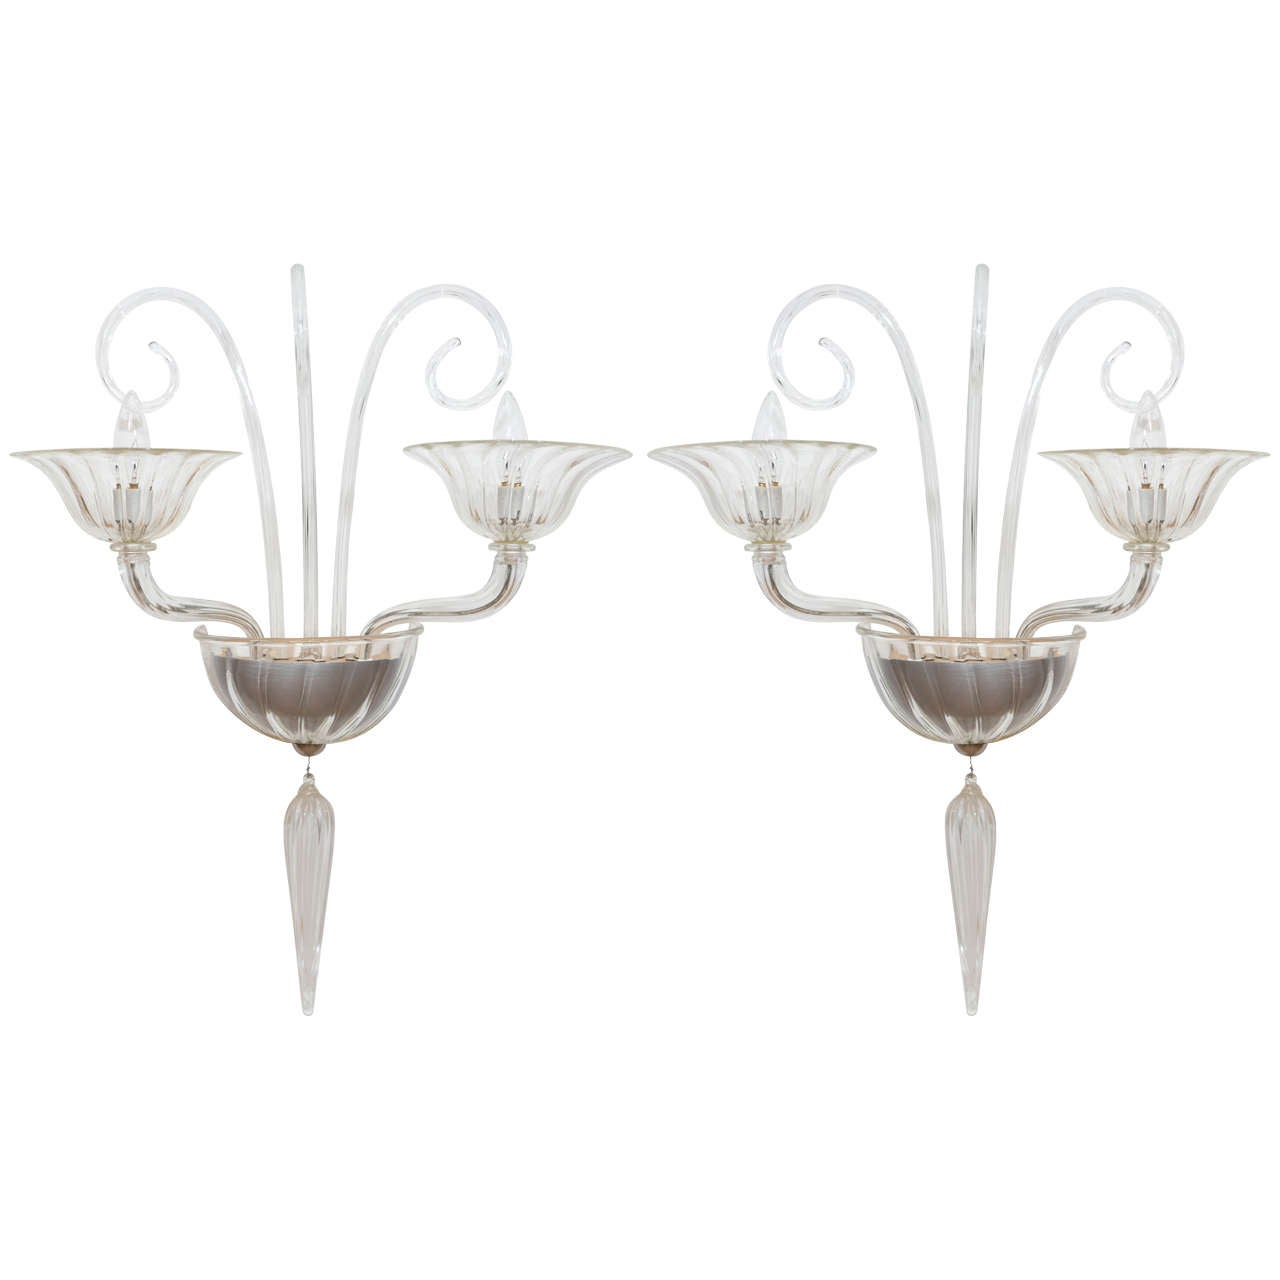 Pair of Murano Glass Wall Sconces Attributed to Mazzega 1